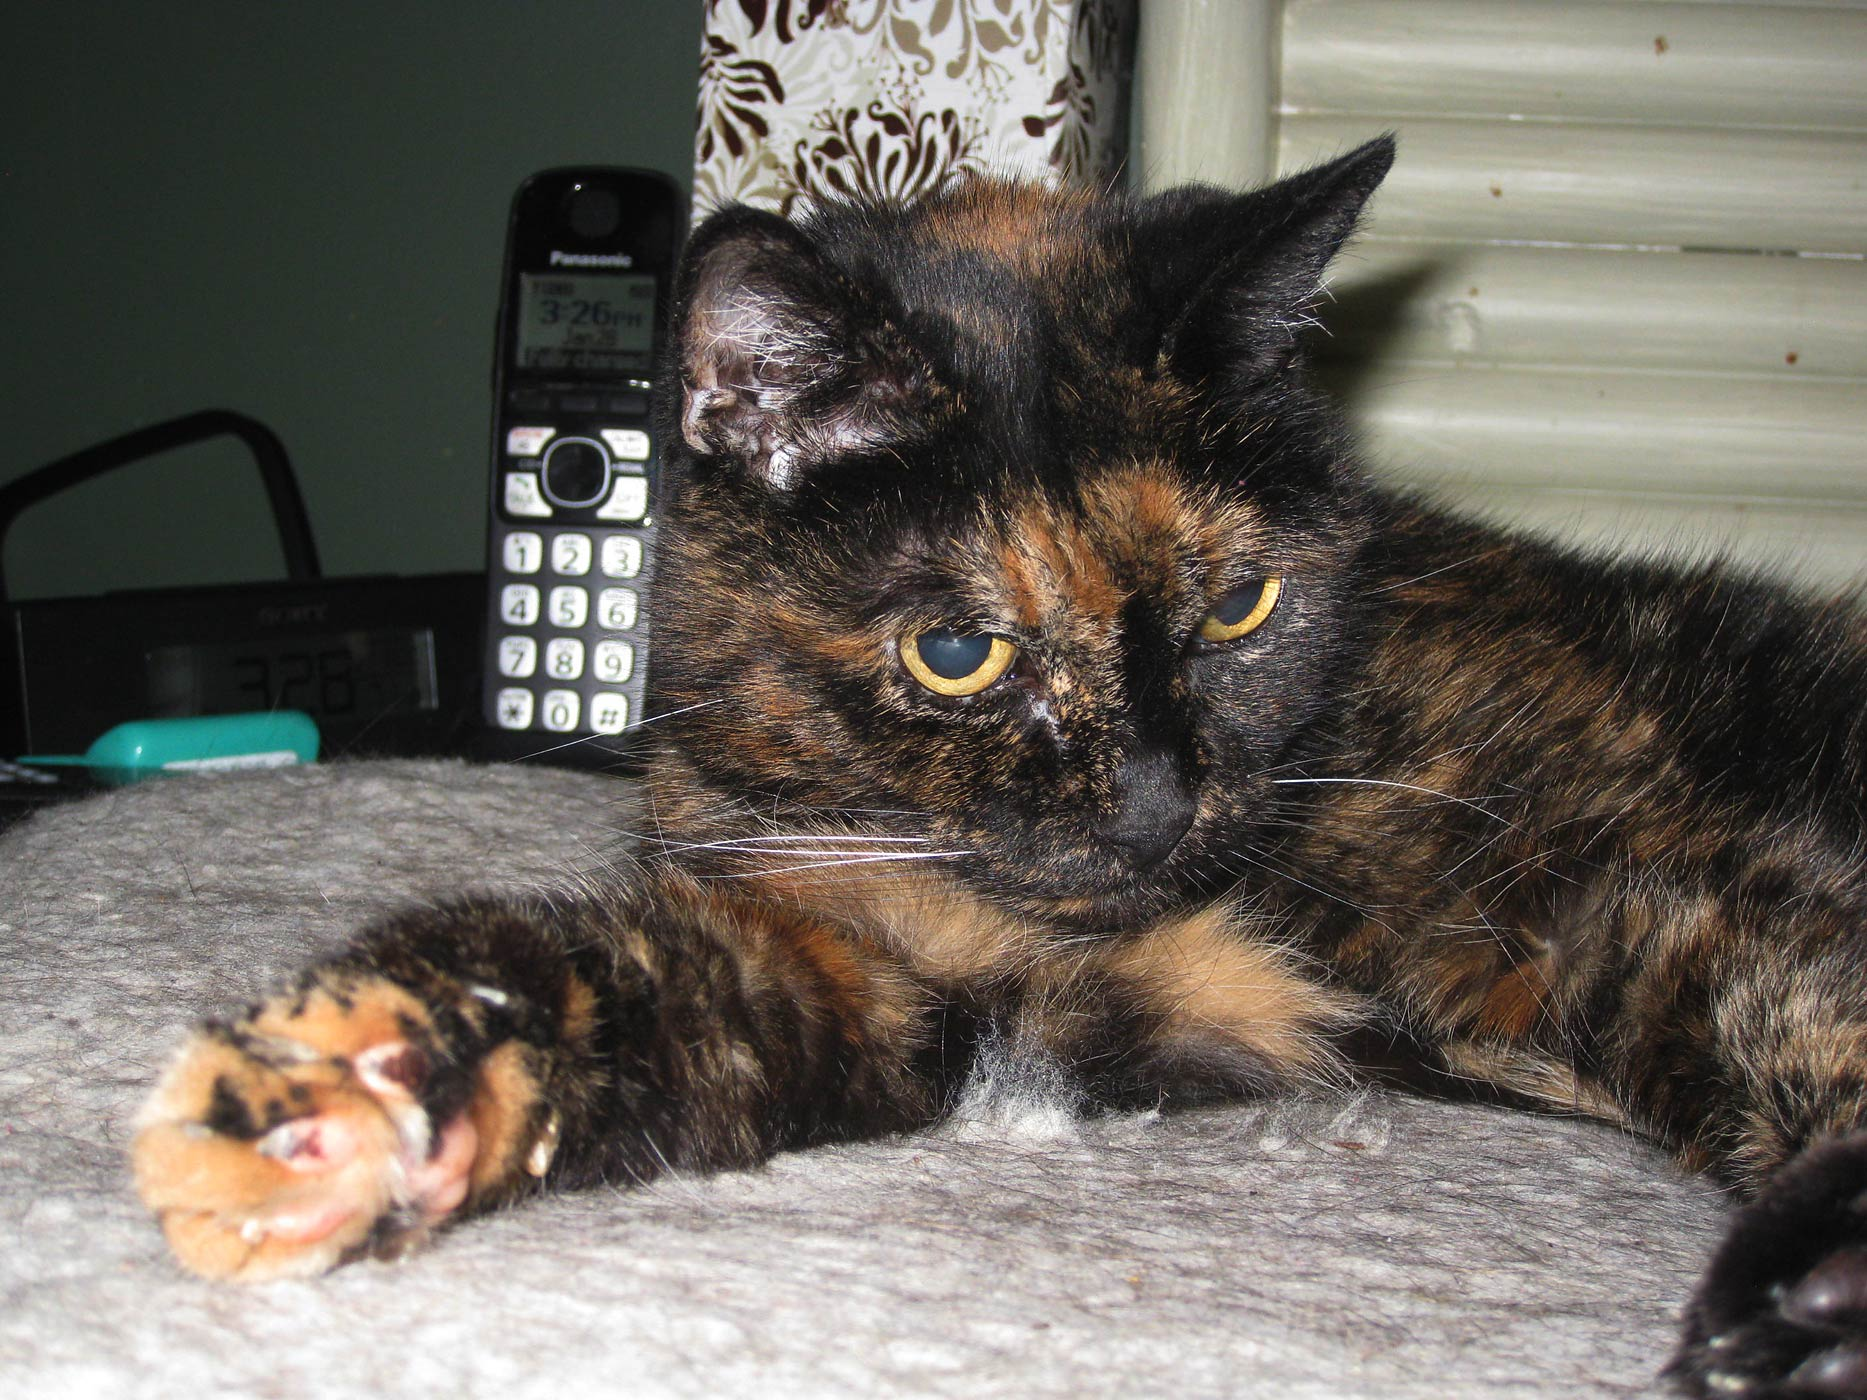 Tiffany Two, the oldest living cat in the world, at home in San Diego, California.